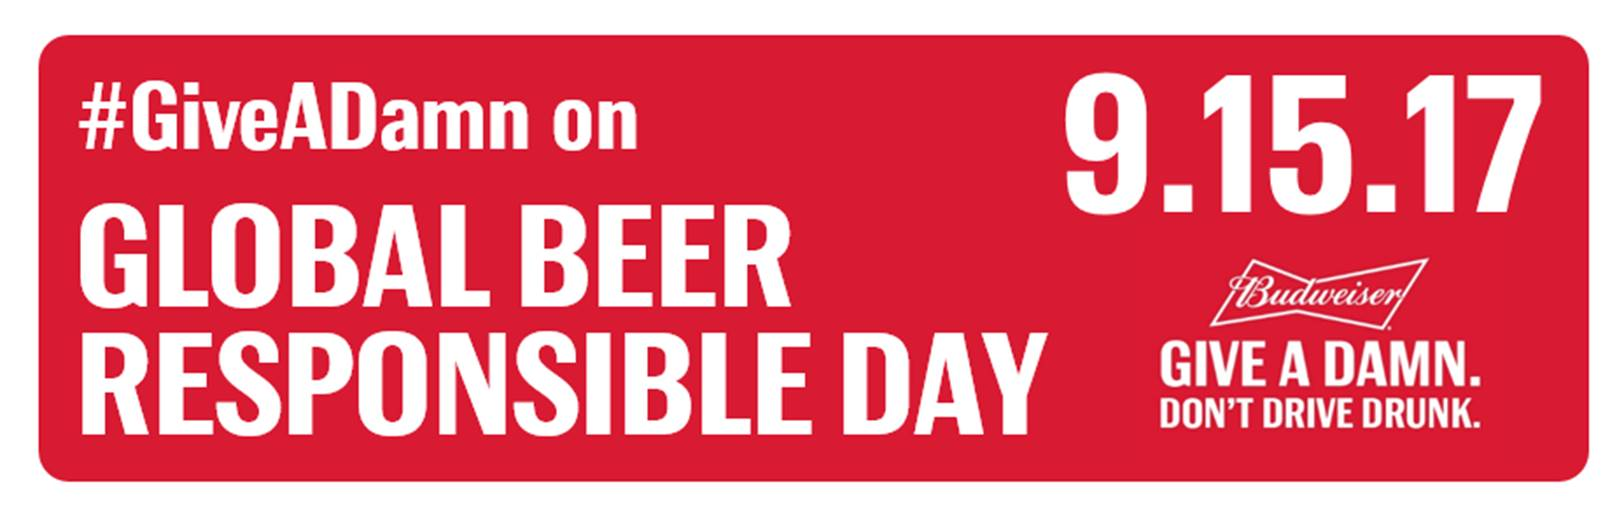 Global Beer Day Sept 15 2017